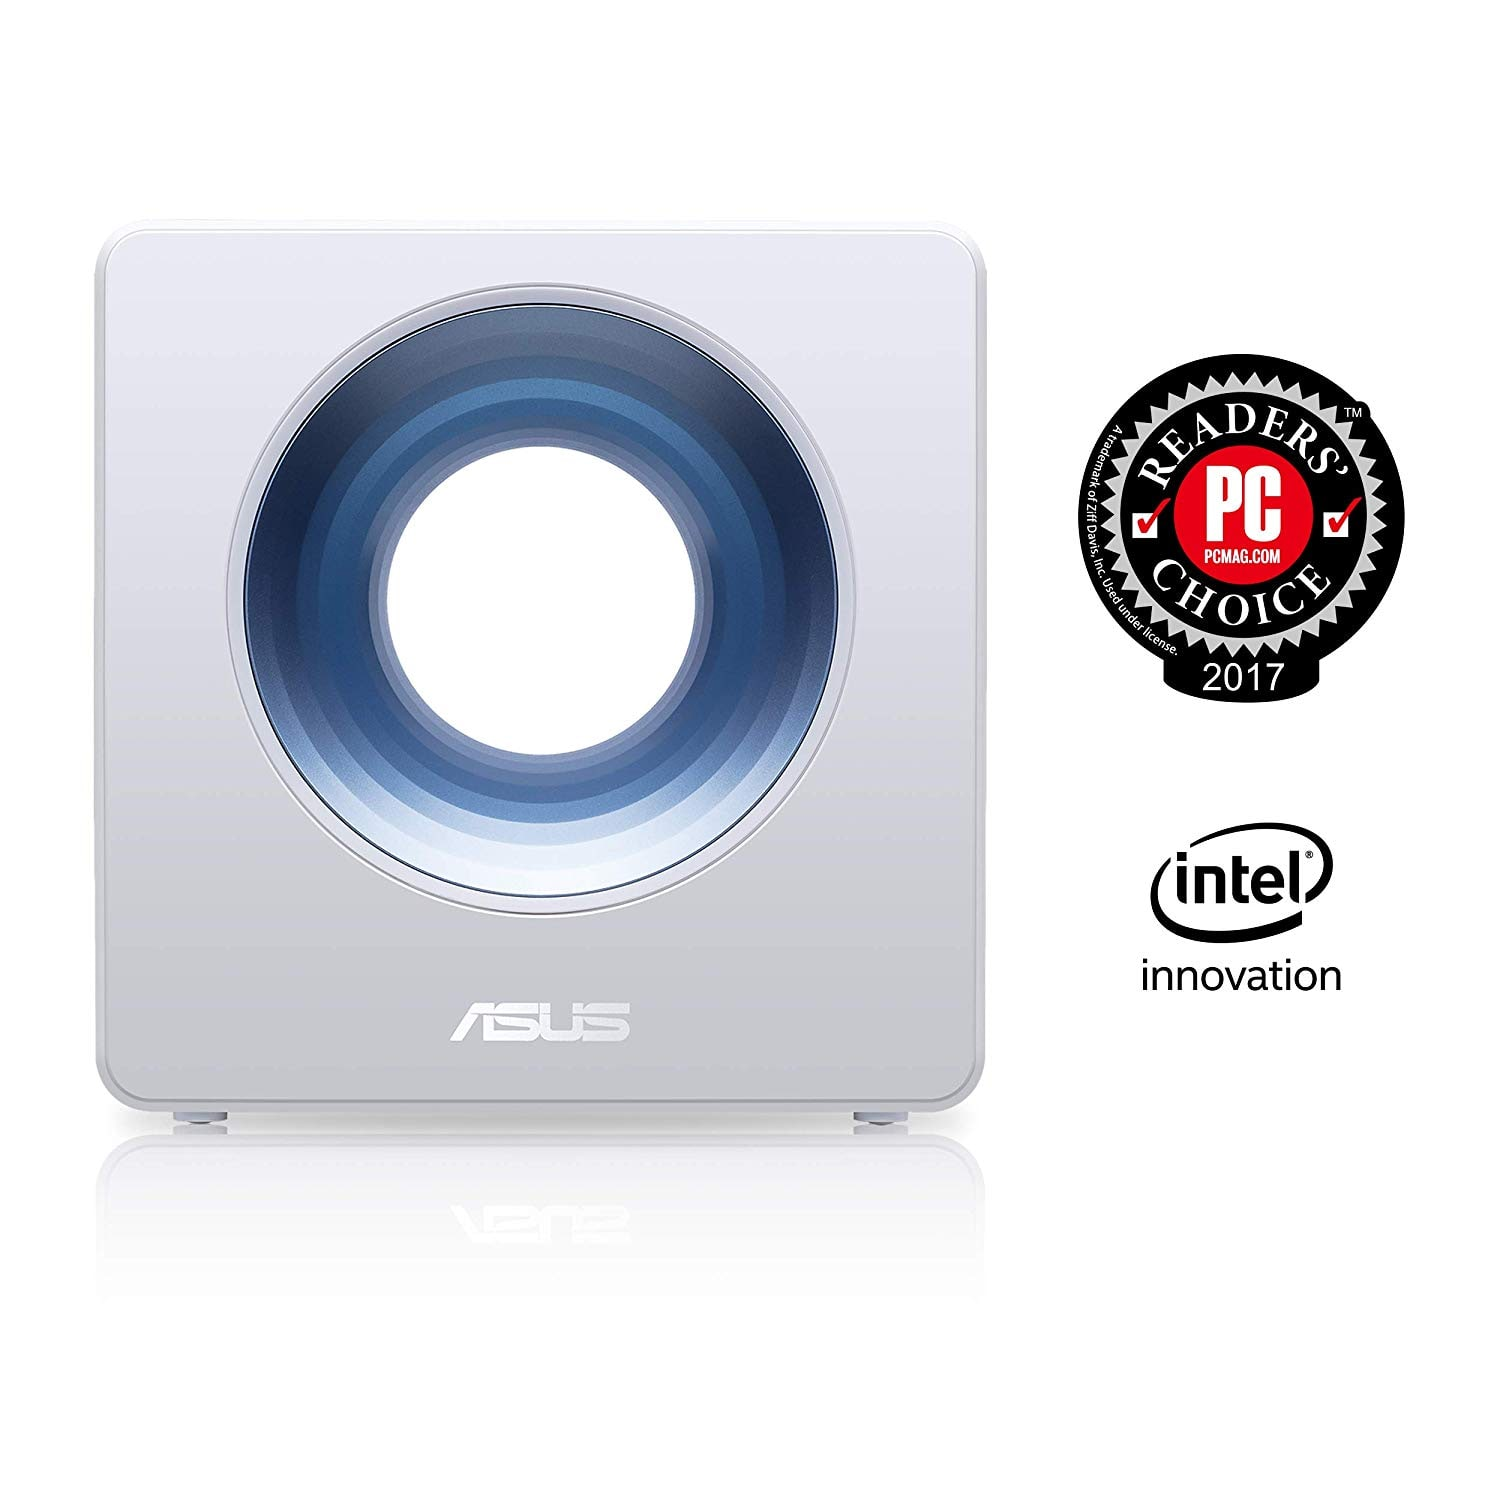 Asus Blue Cave AC2600 Dual-Band Wireless Router $100